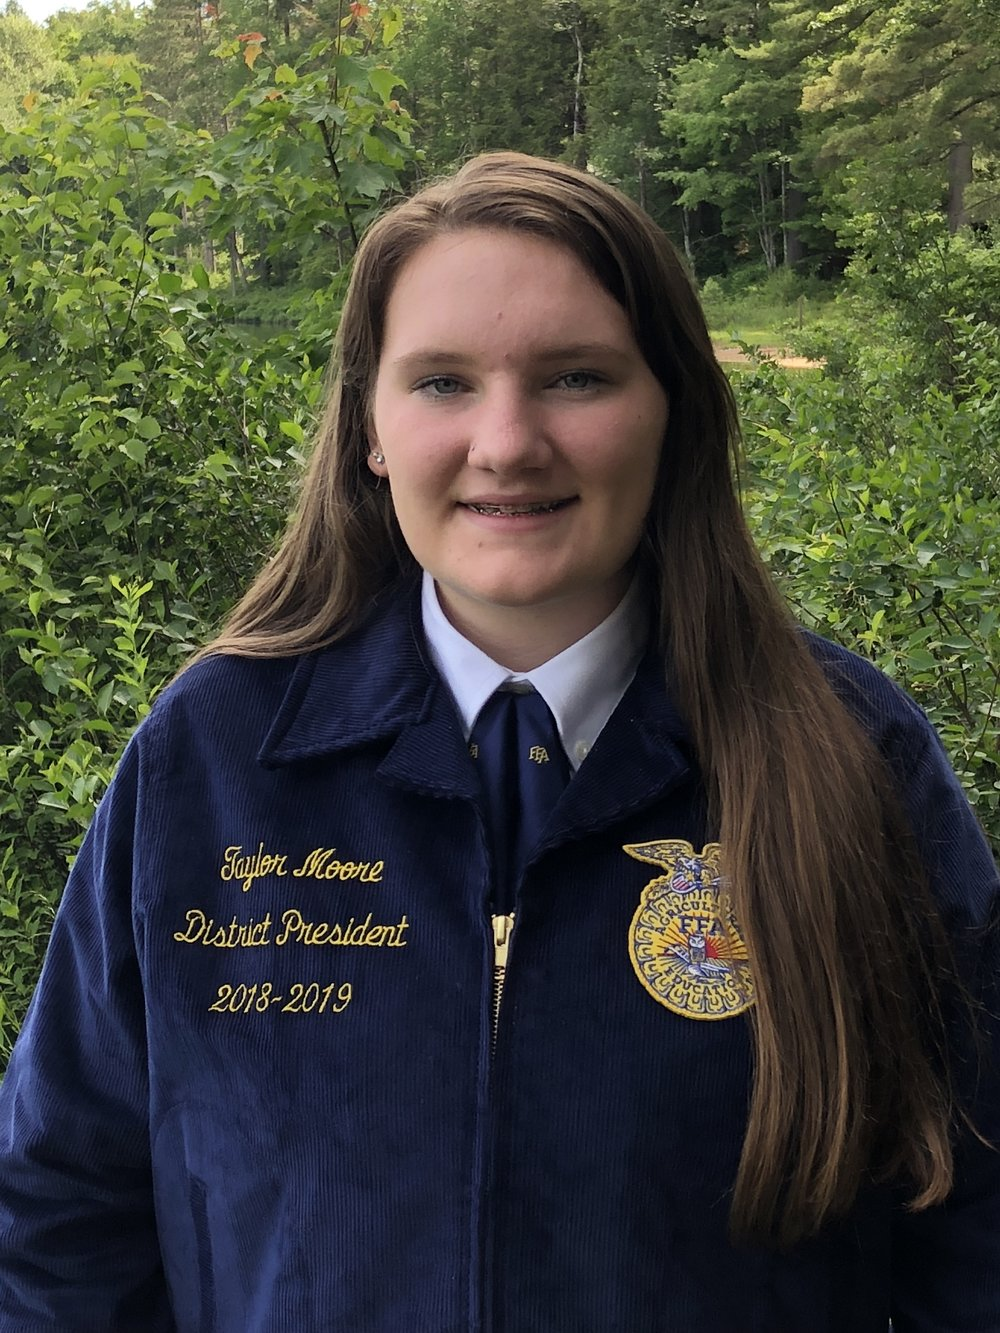 TAYLOR MOORE DISTRICT 4 PRESIDENT OXFORD FFA